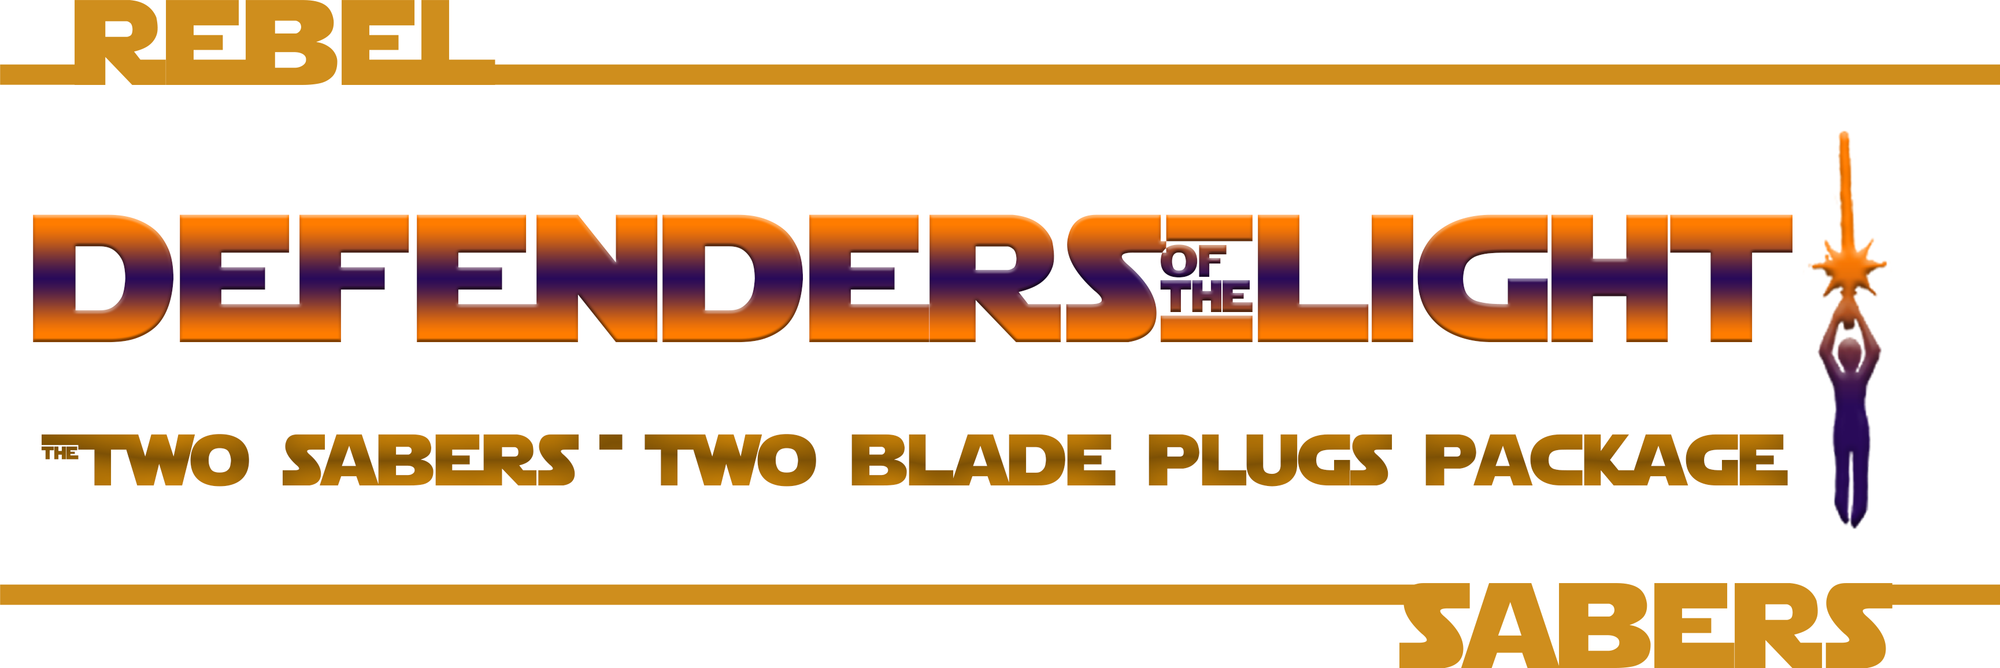 Defenders of the Light | 2 Sabers & 2 Blade Plugs